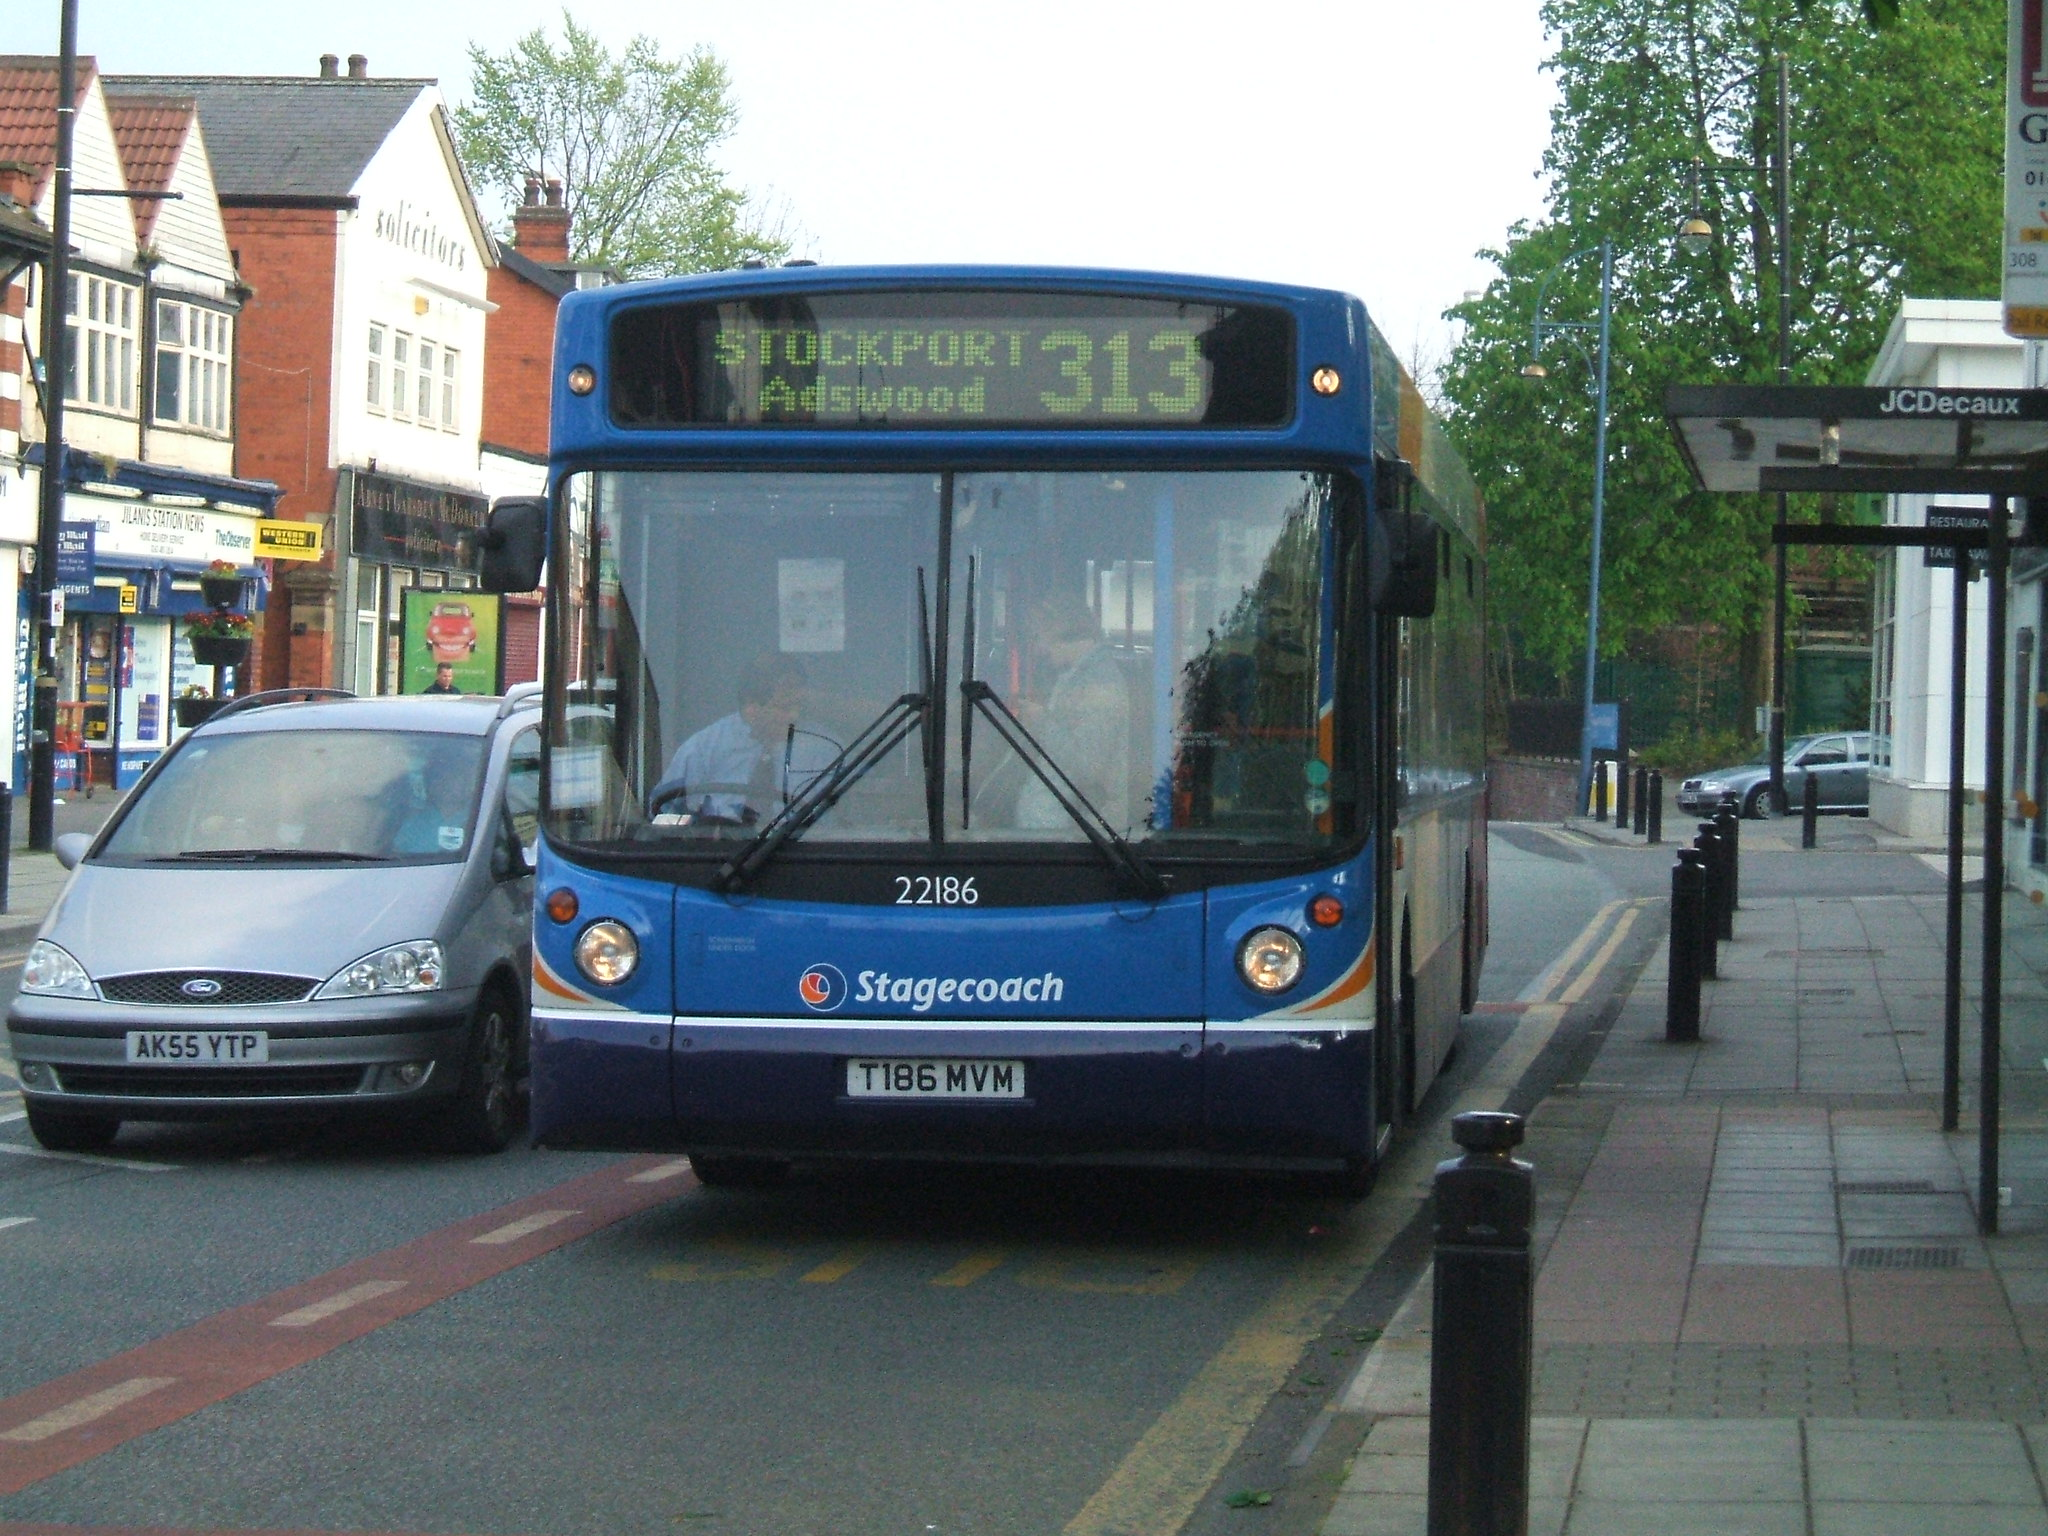 #AYearOfBuses 313: Stockport – Manchester Airport